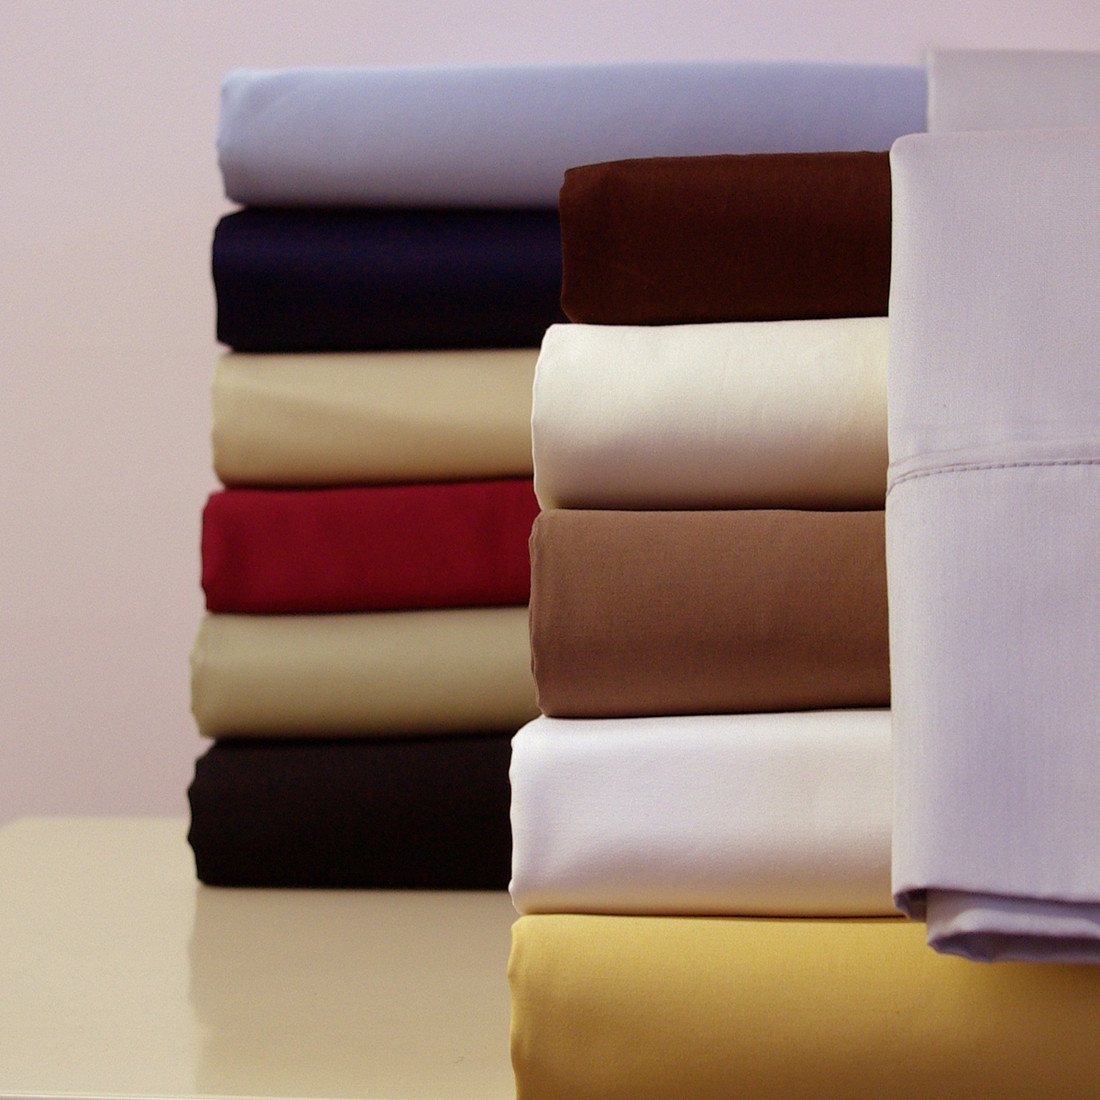 Attached King Size Waterbed Sheets 100-Percent Cotton 300 Thread Count/ image